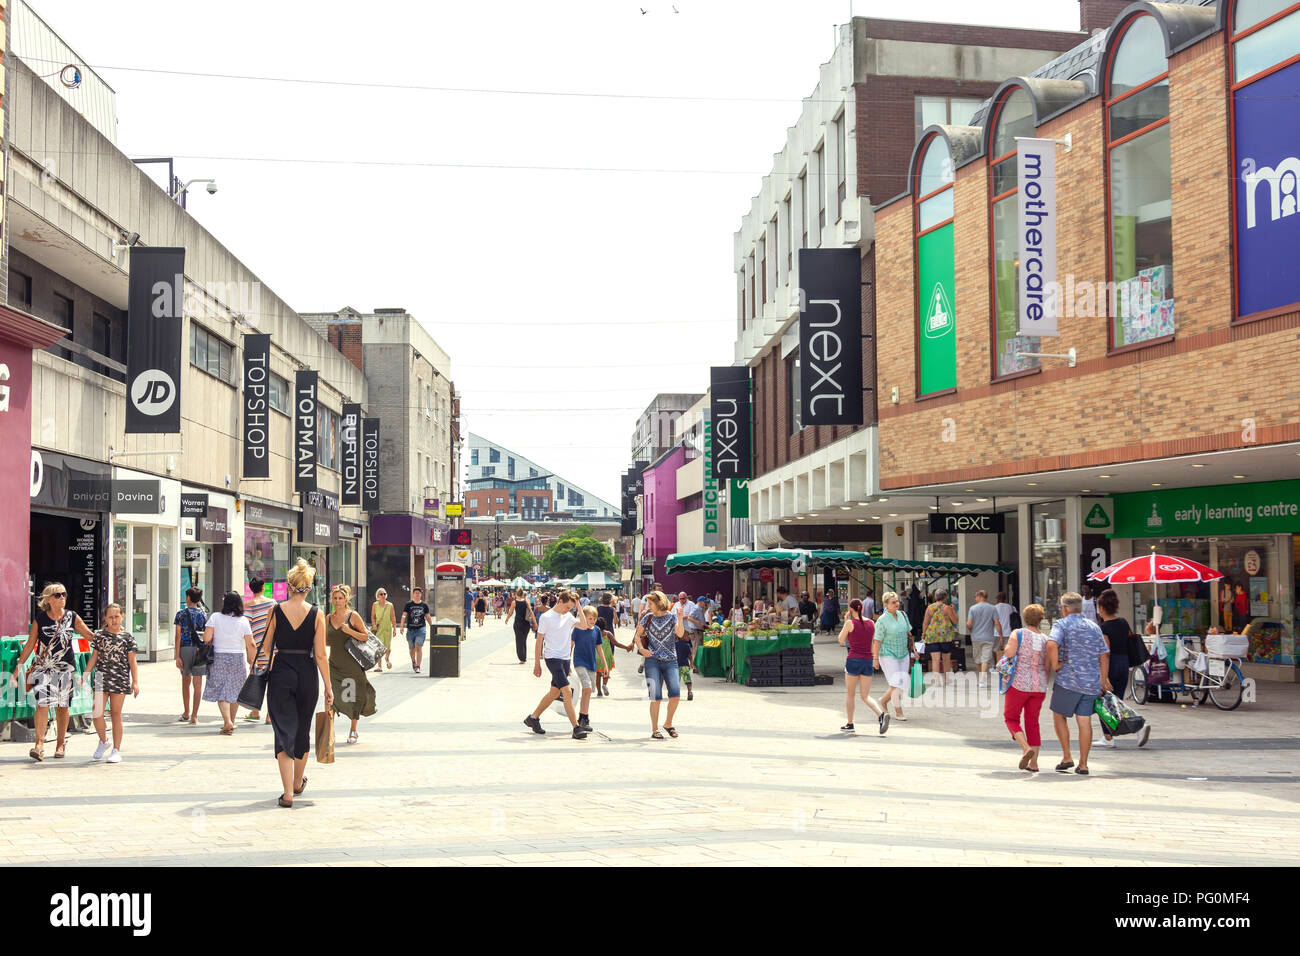 Pedestrianised High Street, Bromley, London Borough of Bromley, Greater London, England, United Kingdom - Stock Image